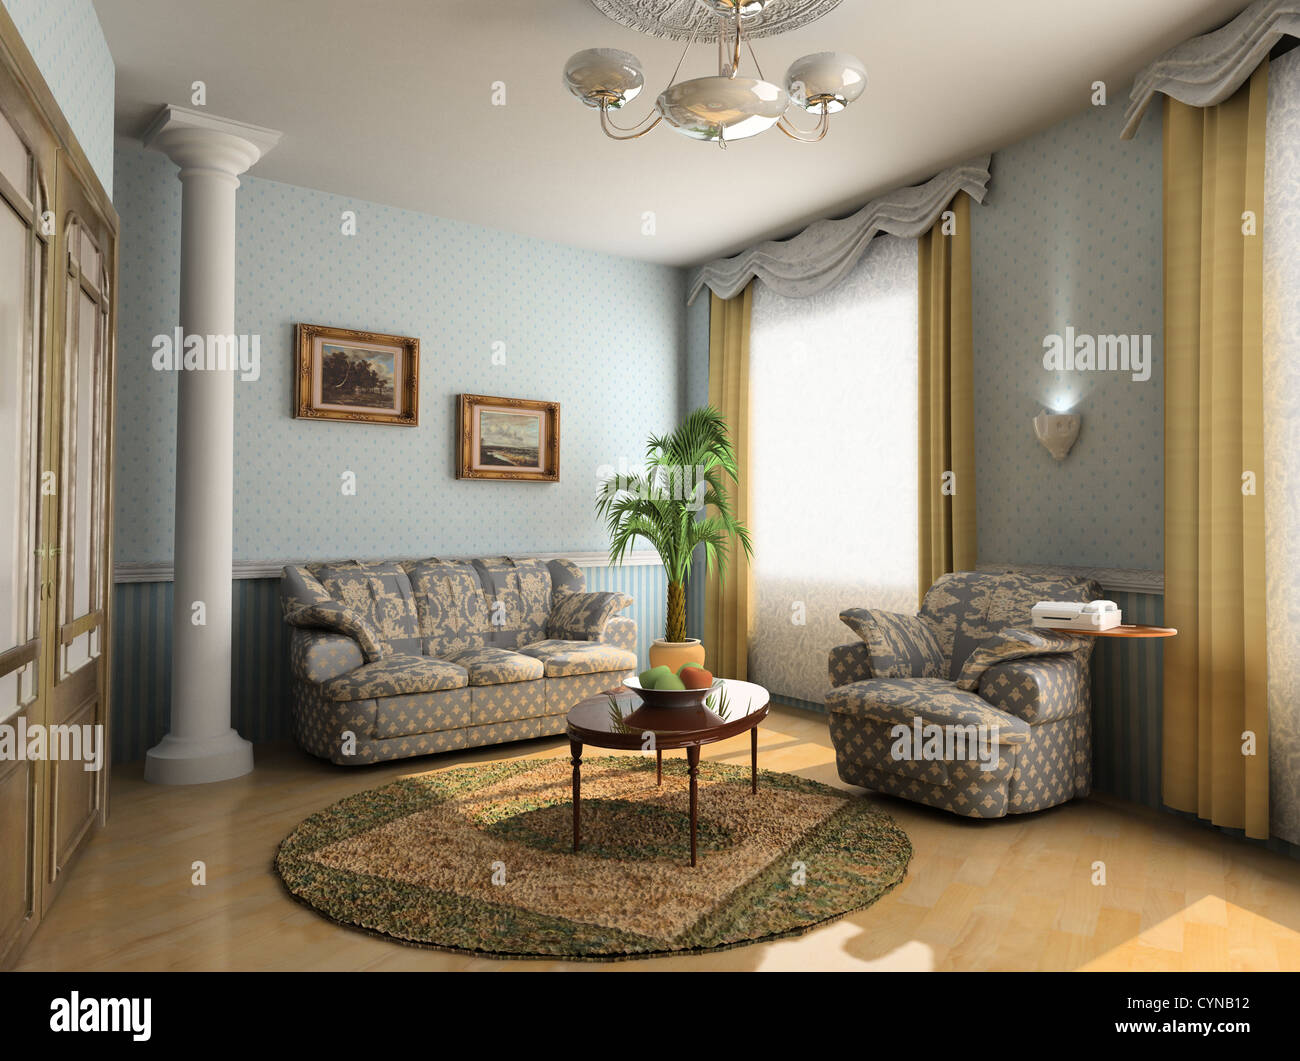 modern hotel interior design in classic style (privat apartment 3d